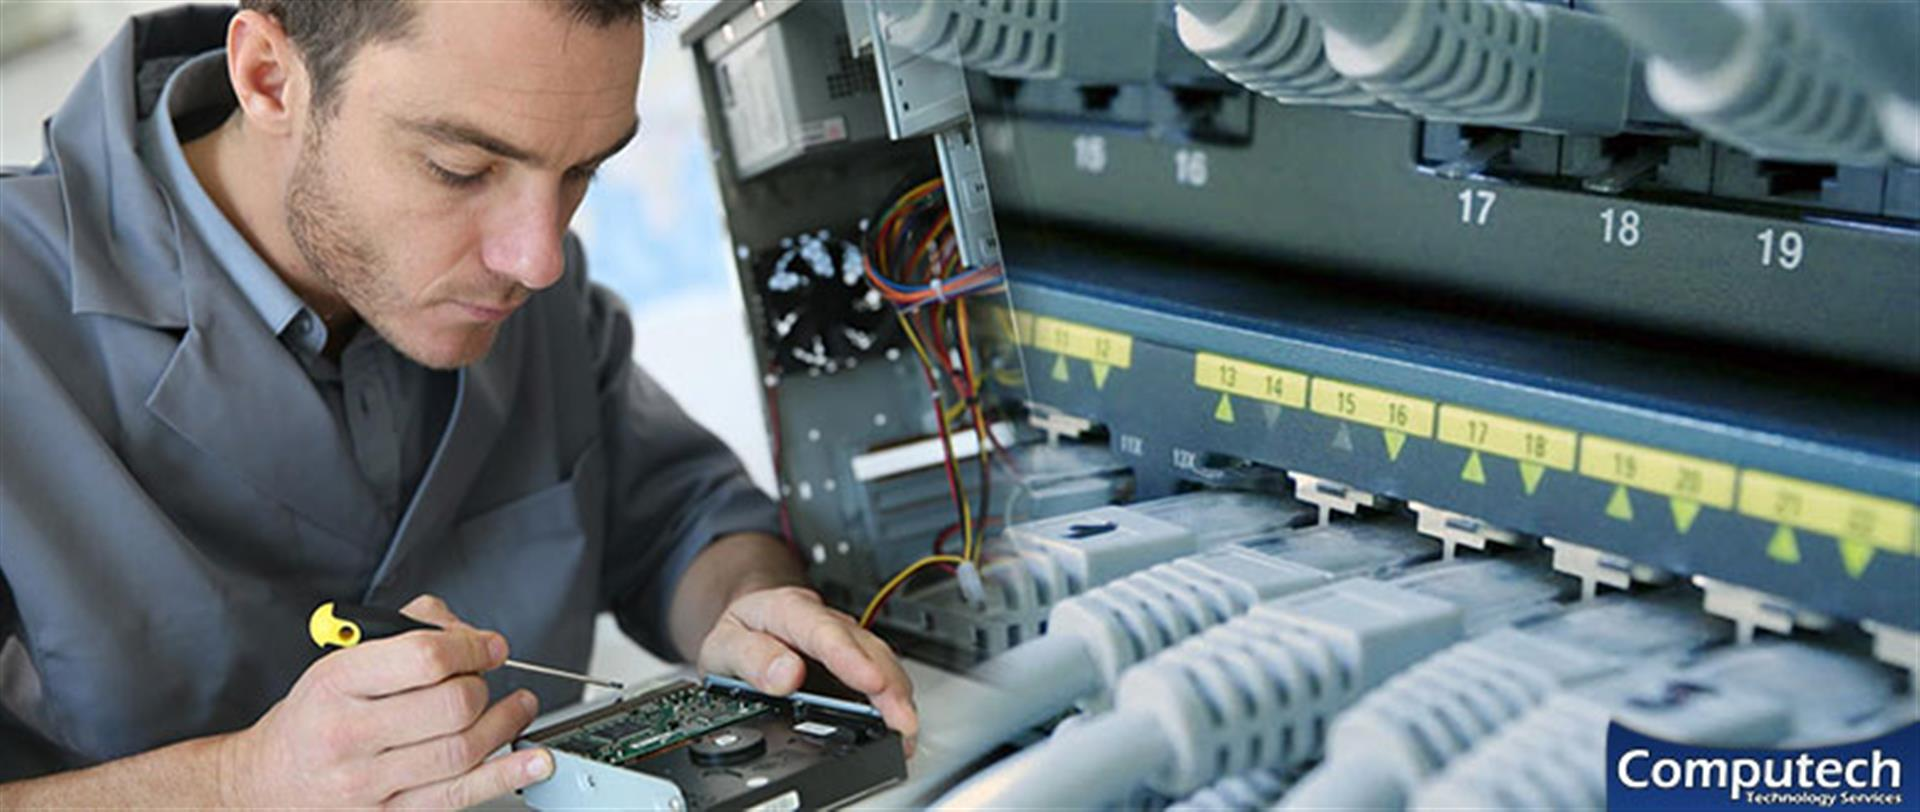 Johns Creek Georgia Onsite Computer & Printer Repairs, Networks, Voice & Data Cabling Solutions